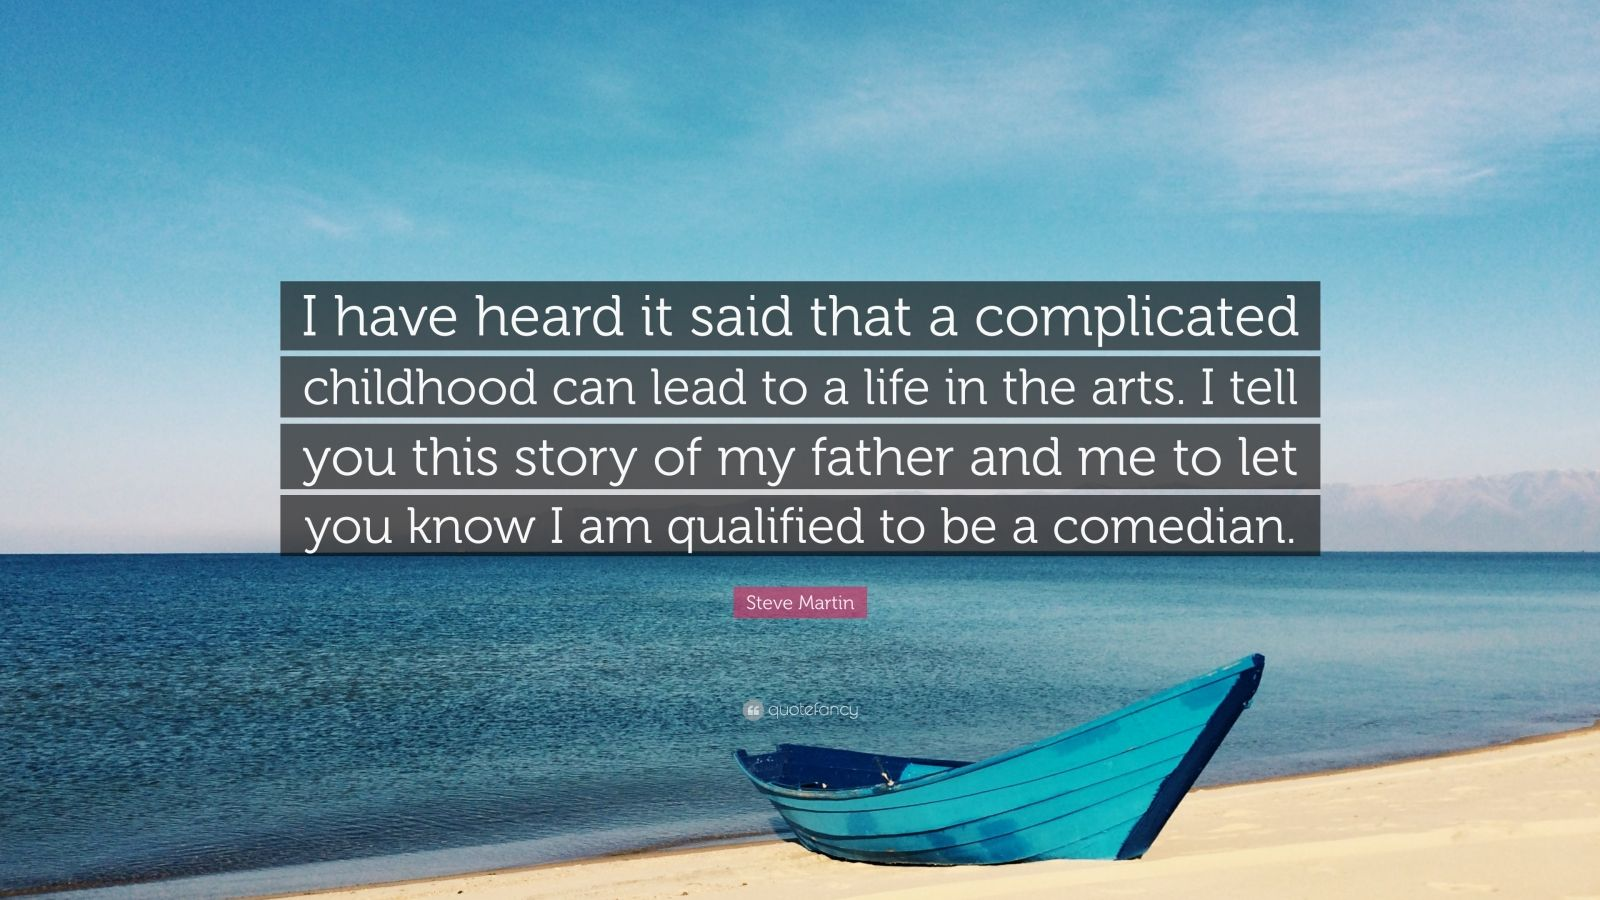 """Steve Martin Quote: """"I have heard it said that a complicated childhood can lead to a life in the arts. I tell you this story of my father and me to let you know I am qualified to be a comedian."""""""